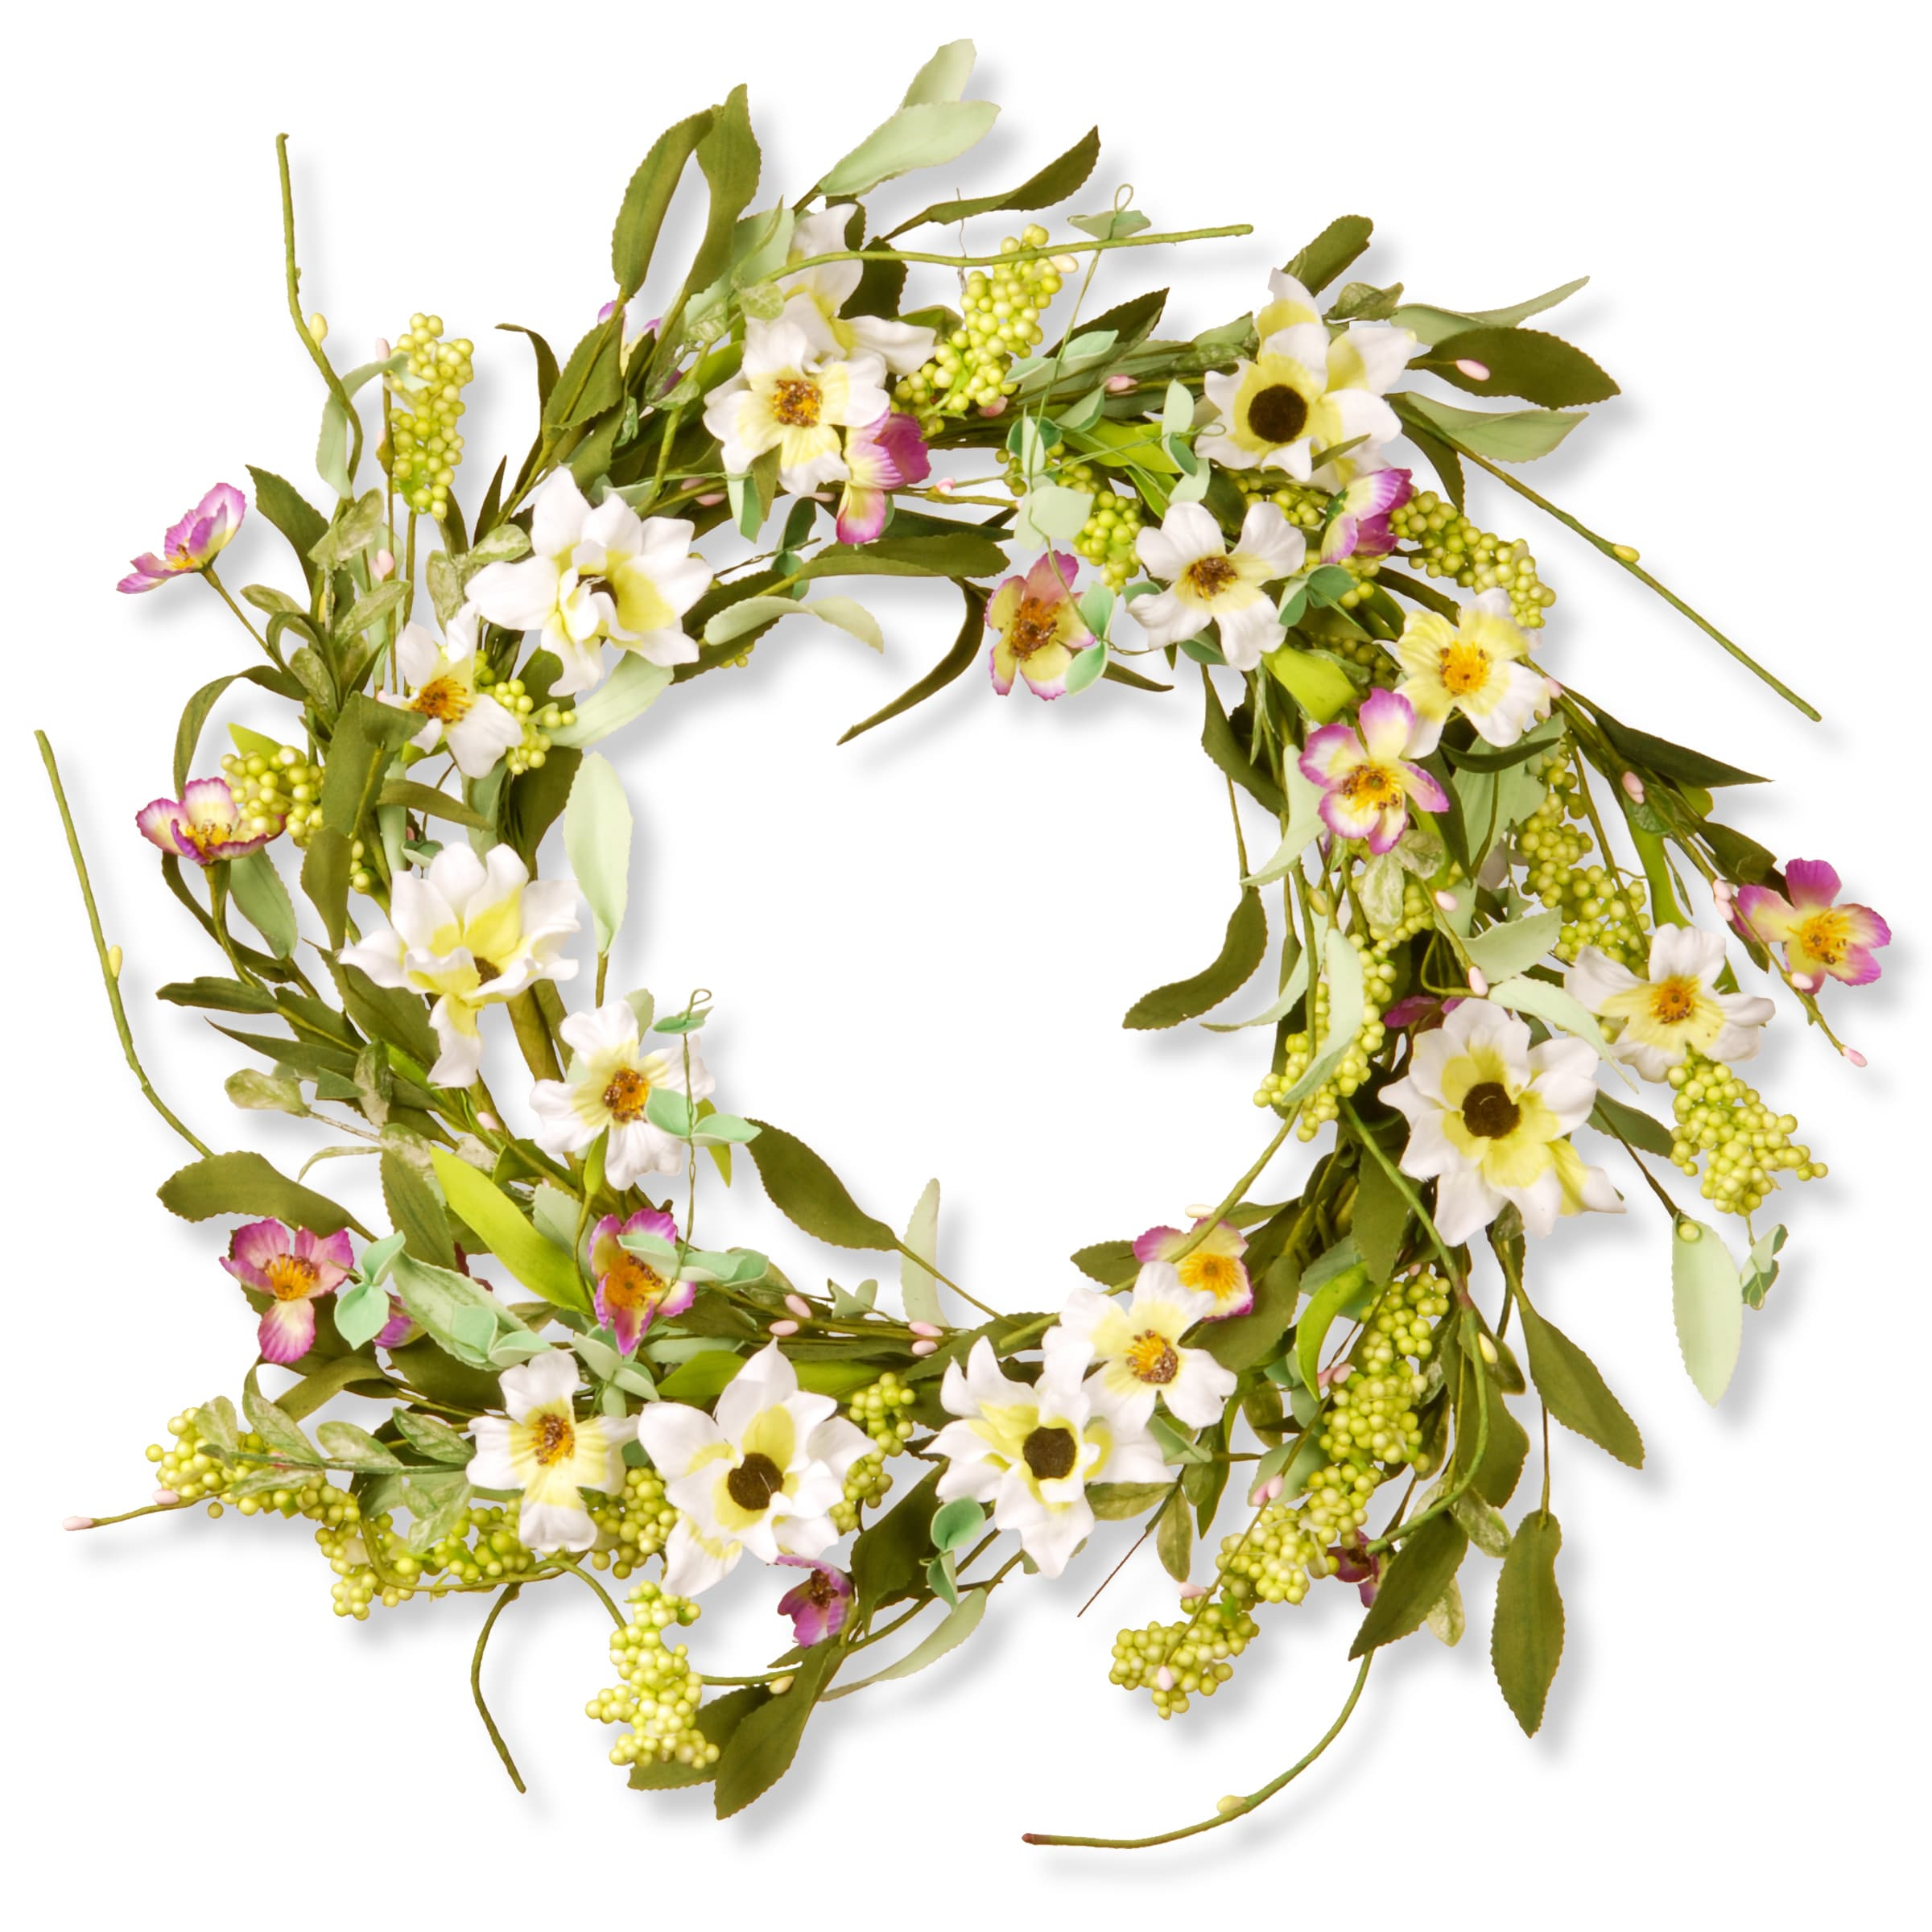 Shop national tree company bluepurplepink 20 inch spring floral shop national tree company bluepurplepink 20 inch spring floral wreath decor free shipping on orders over 45 overstock 13554589 izmirmasajfo